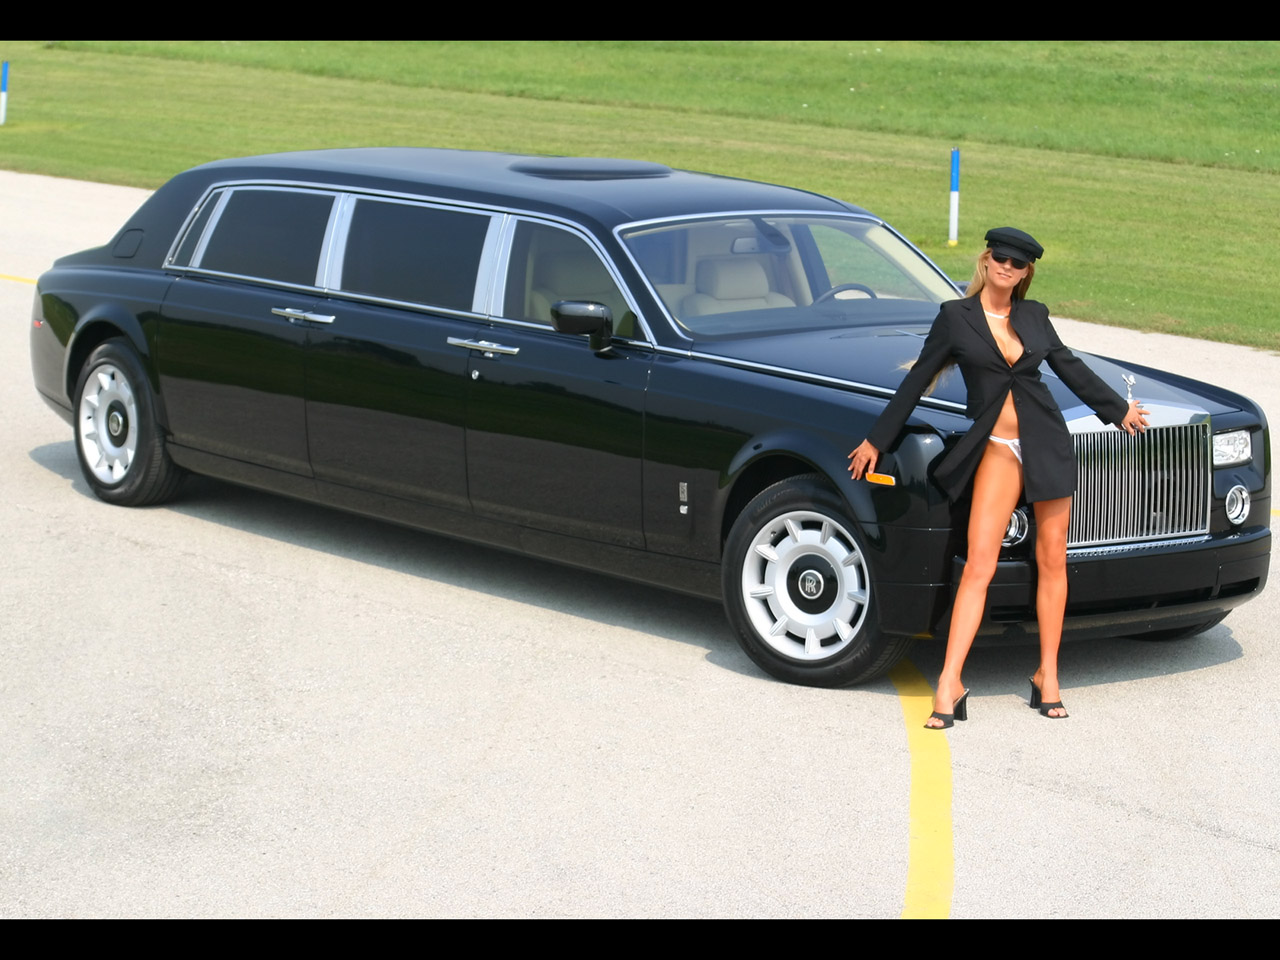 Rolls royce with photo - 4